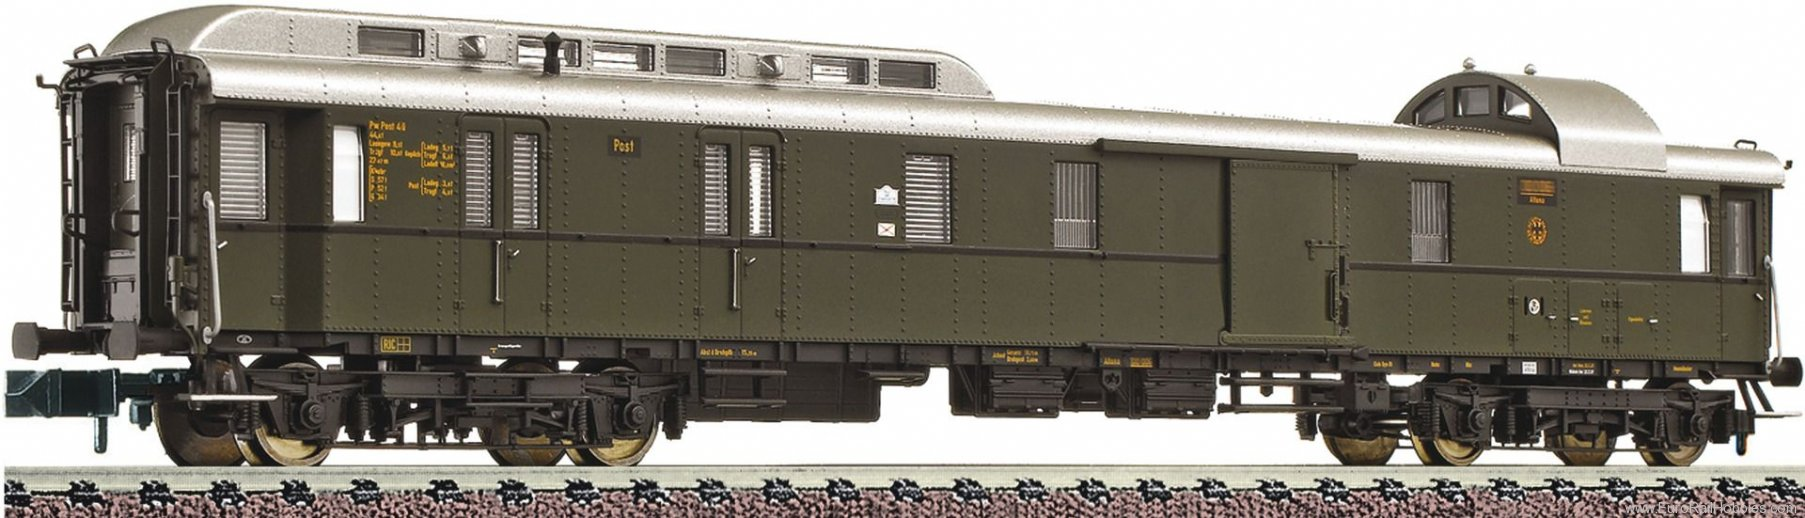 Fleischmann 863604 DRG Standard Post and Baggage Coach